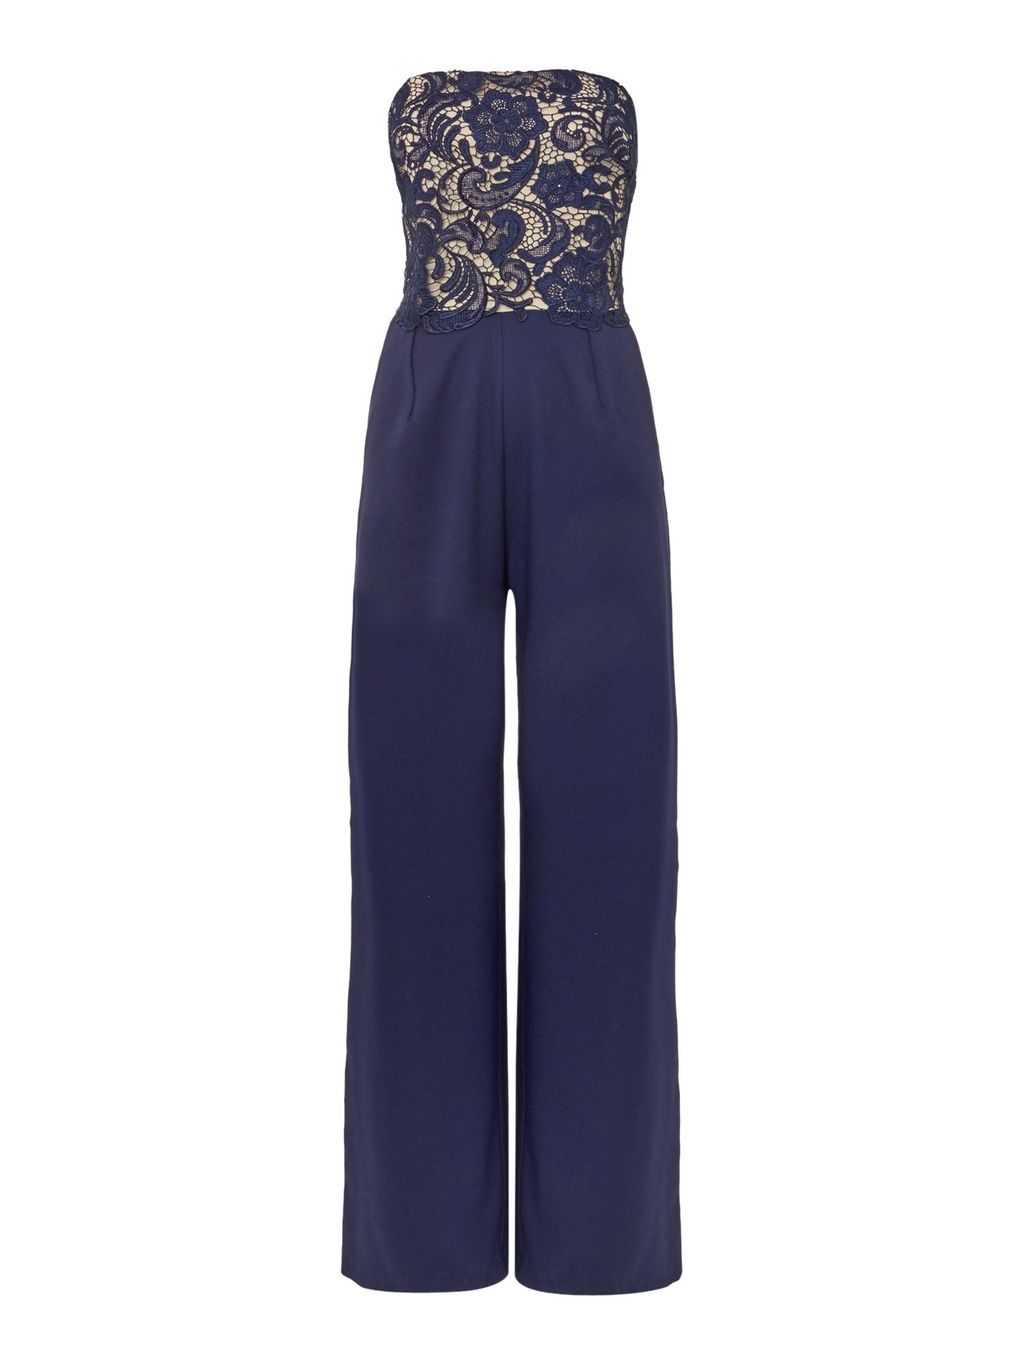 Sleeveless Embroidered Jumpsuit, Navy - length: standard; neckline: strapless (straight/sweetheart); fit: tailored/fitted; sleeve style: sleeveless; predominant colour: navy; secondary colour: nude; fibres: polyester/polyamide - stretch; occasions: occasion; sleeve length: sleeveless; texture group: lace; style: jumpsuit; pattern type: fabric; pattern size: standard; pattern: patterned/print; embellishment: lace; season: s/s 2016; wardrobe: event